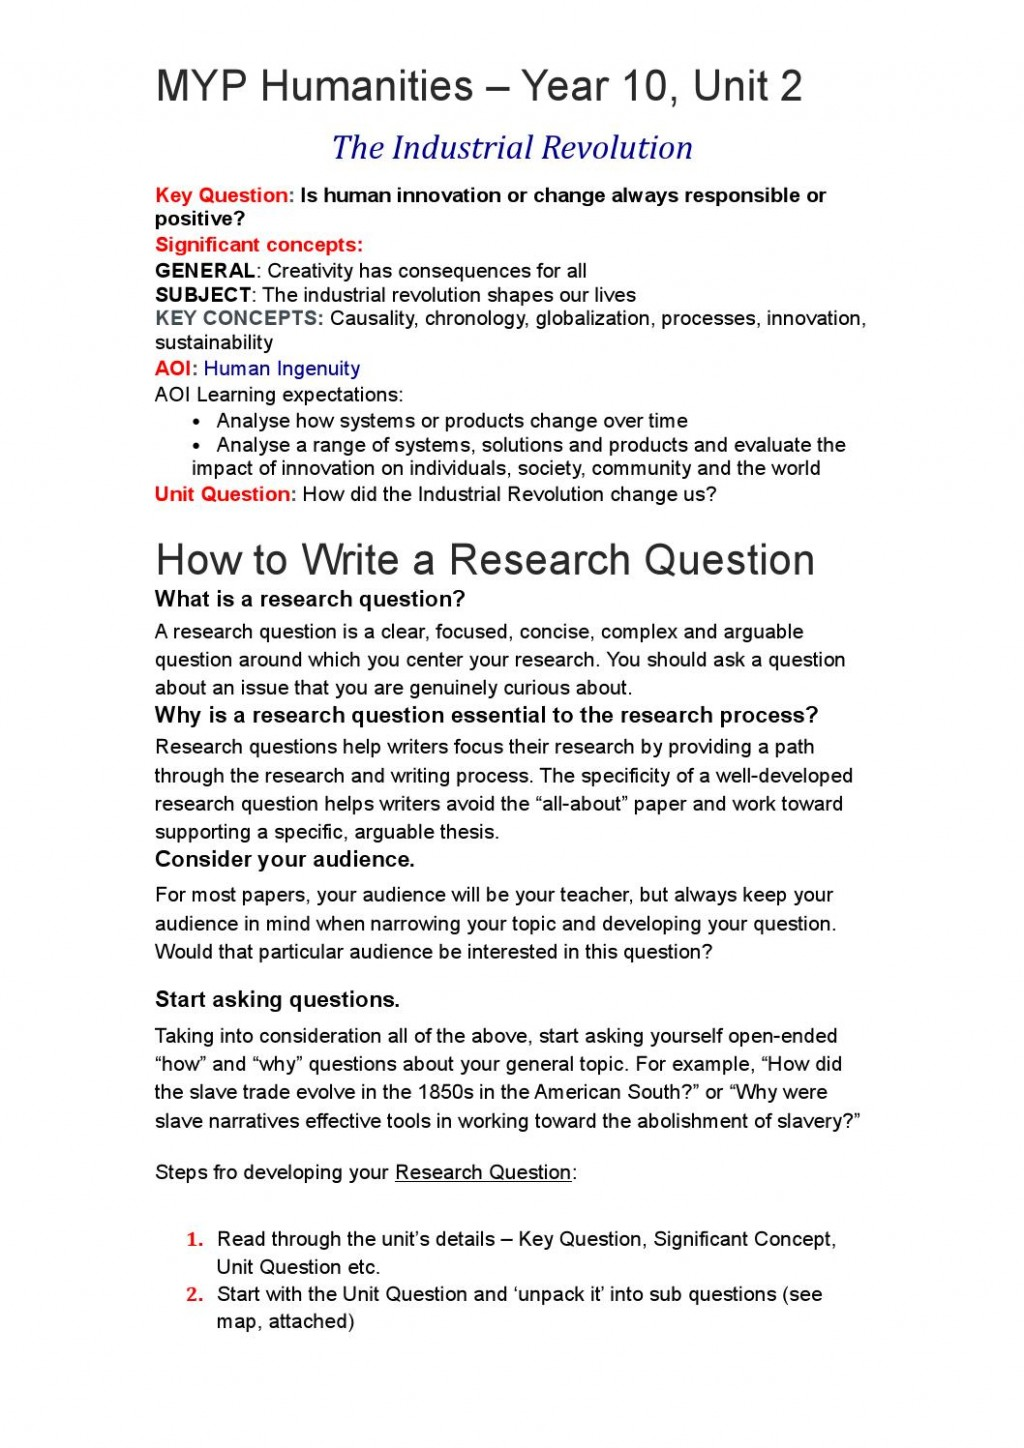 015 Page 1 Questions For Research Formidable Paper Examples Abortion Topic Large